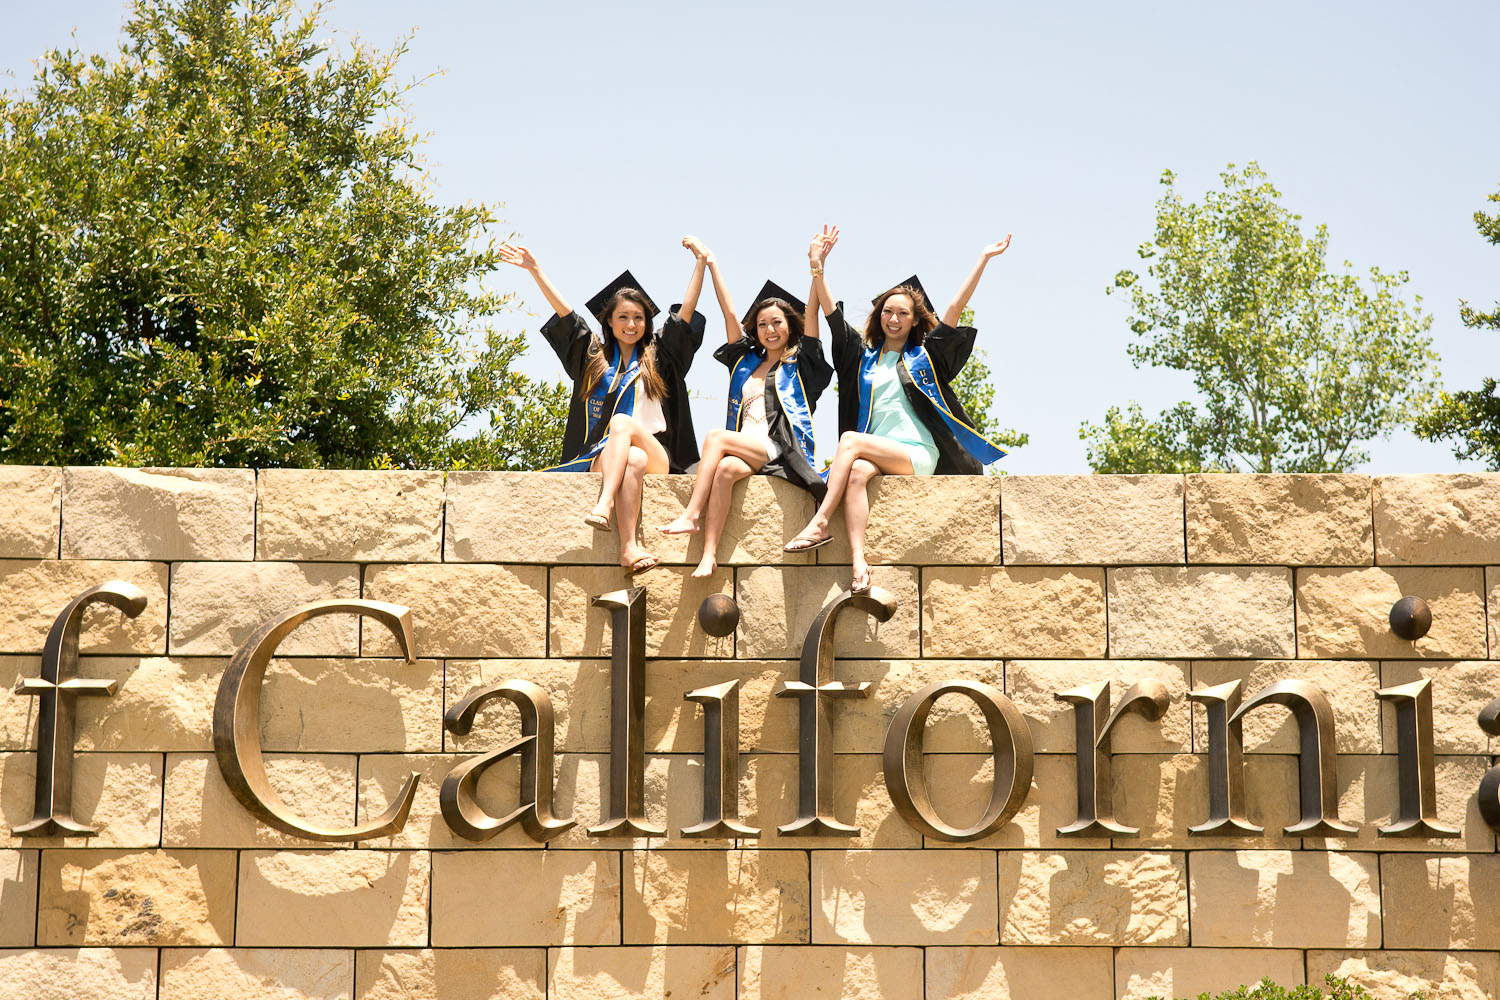 Bryan-Miraflor-Photography-Group-Shawna-Nancy-Lizzy-Grad-Photoshoot-UCI-20140607-0123.jpg